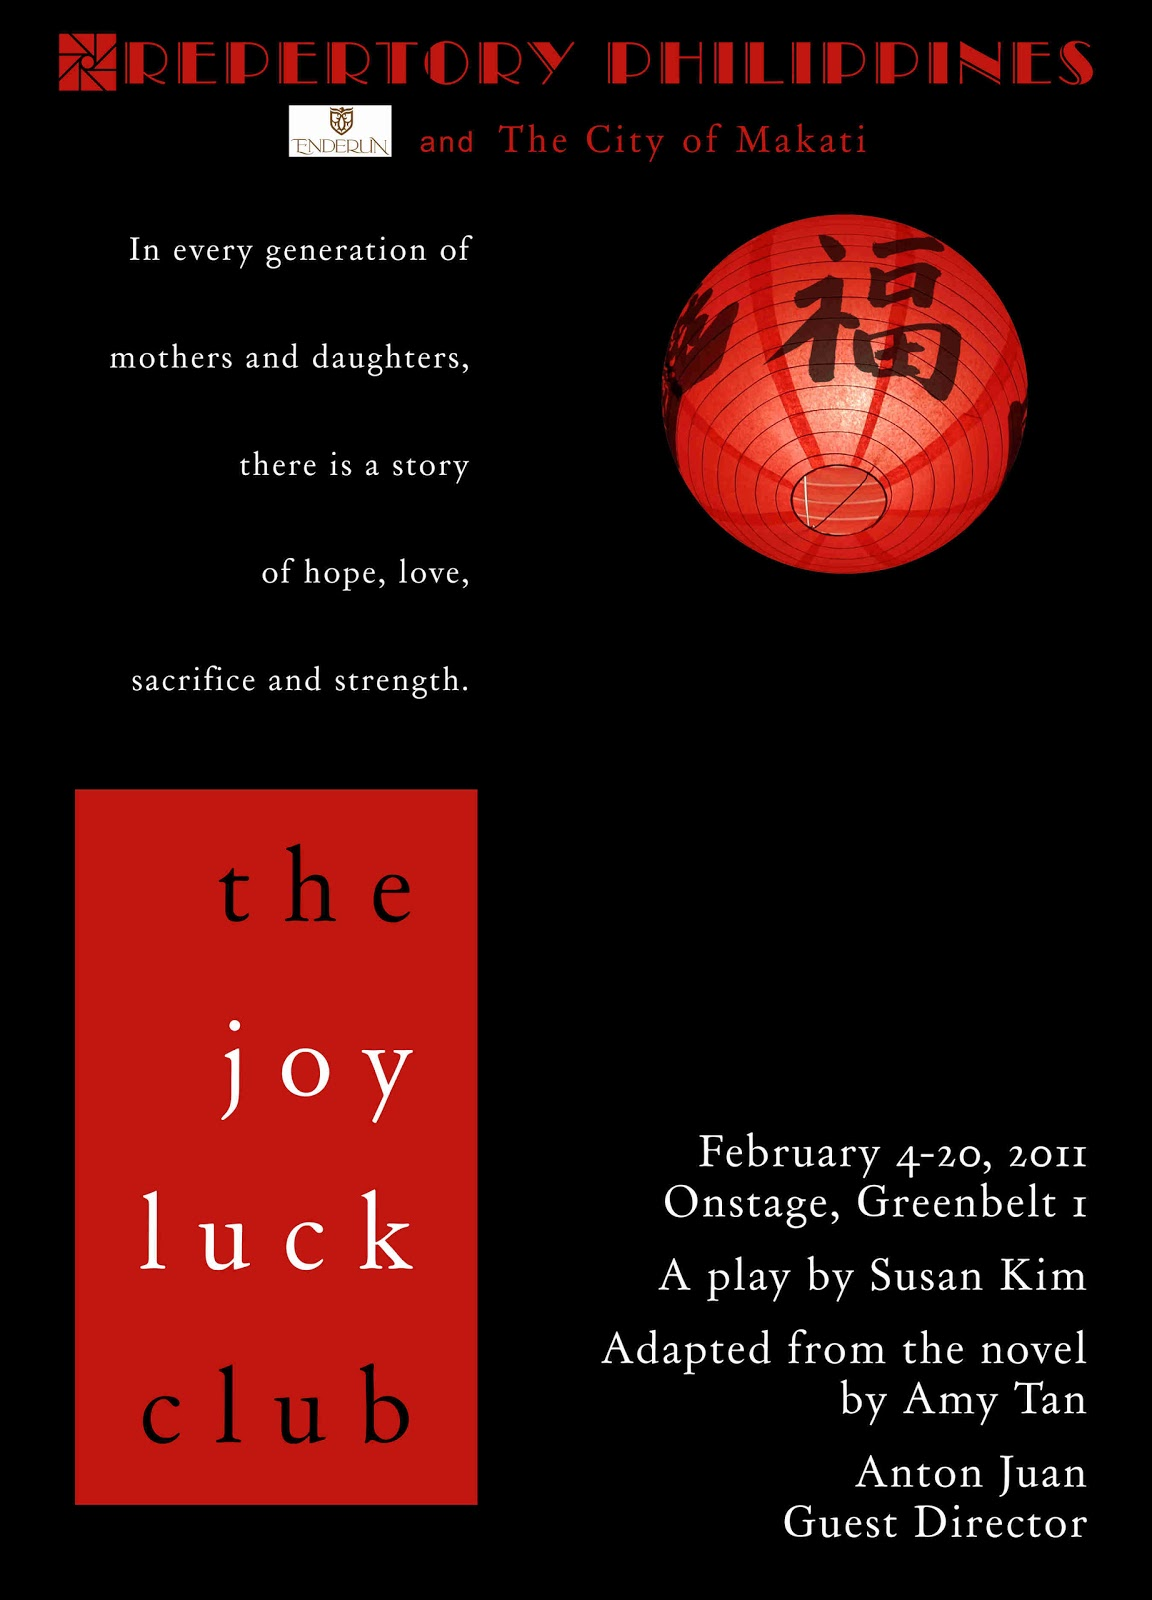 overtures and finales repertory stages the joy luck the joy luck club the best selling novel by amy tan which was also made into a movie directed by wayne wang is now a play